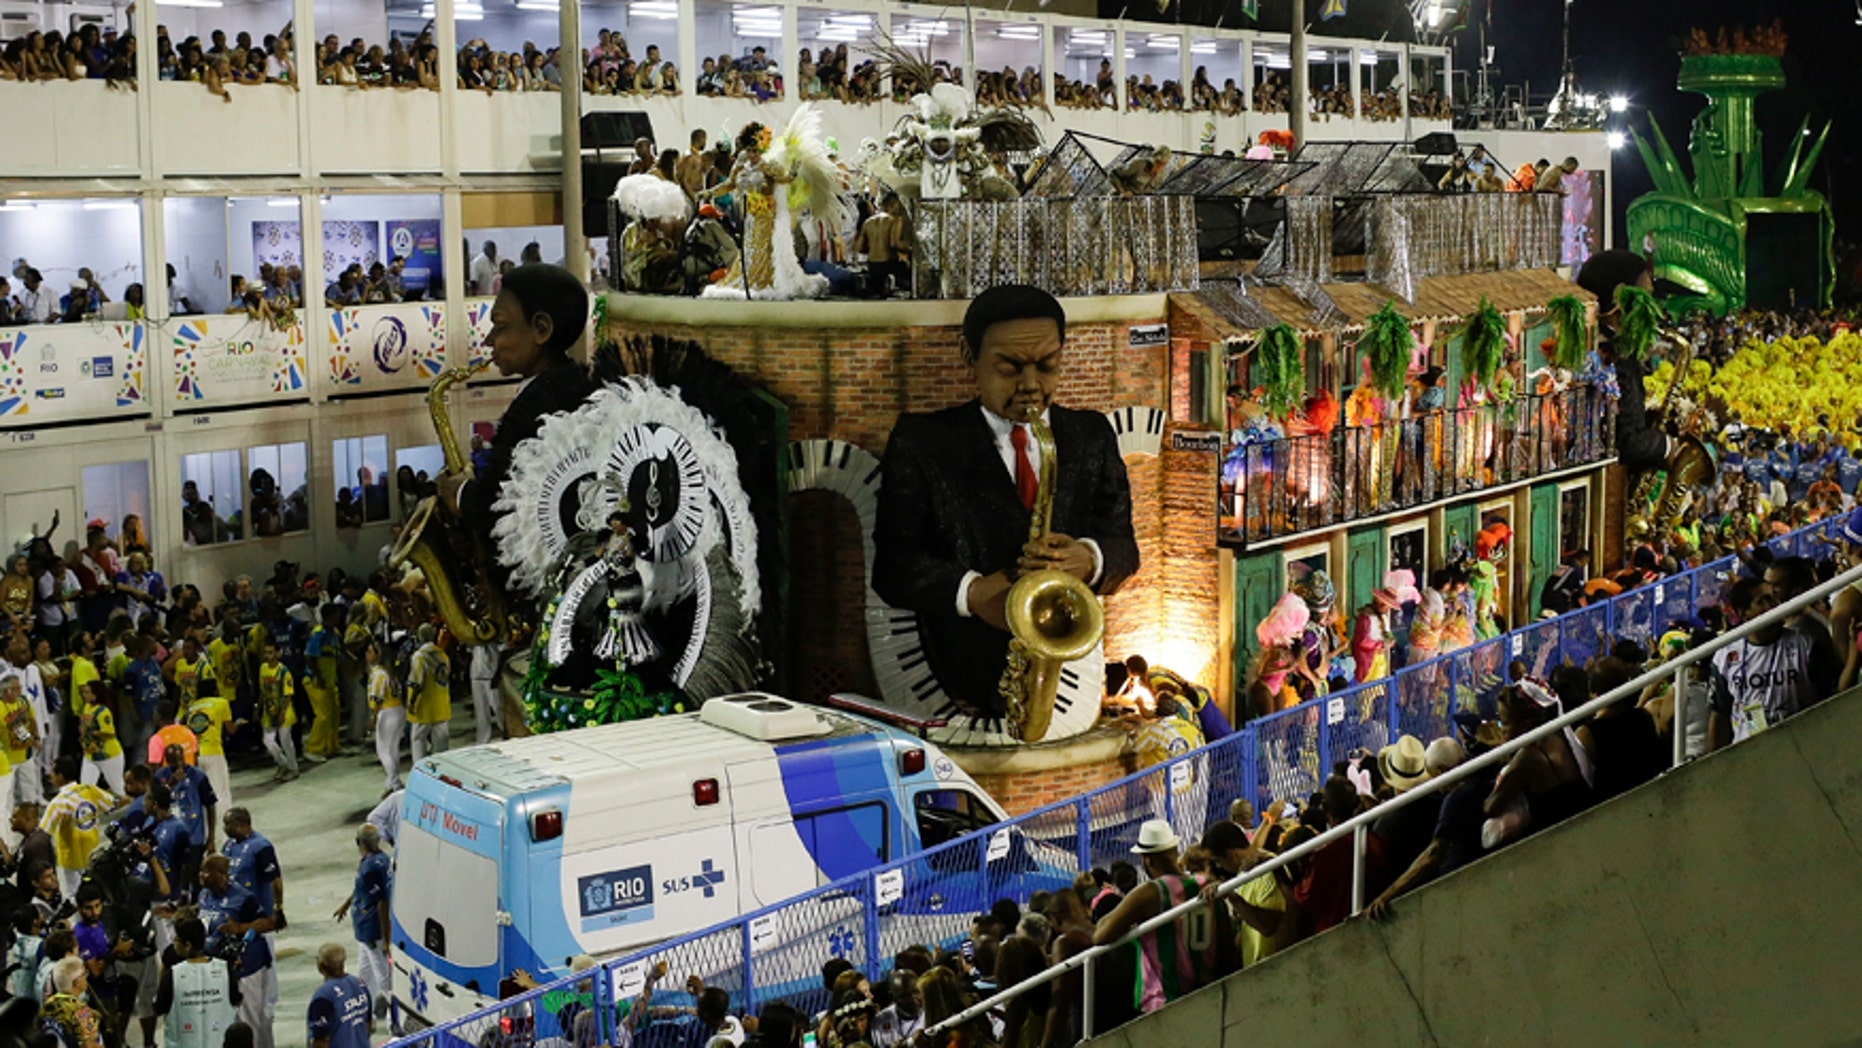 An ambulance parks in front the a float as people are rescued after an accident during the performing of the Unidos da Tijuca samba school for the Carnival celebrations at the Sambadrome in Rio de Janeiro, Brazil, Tuesday, Feb. 28, 2017. Part of the float has collapsed during Rio de Janeiro's world famous Carnival parade, injuring more than a dozen of people, according to doctors at the scene. (AP Photo/Leo Correa)